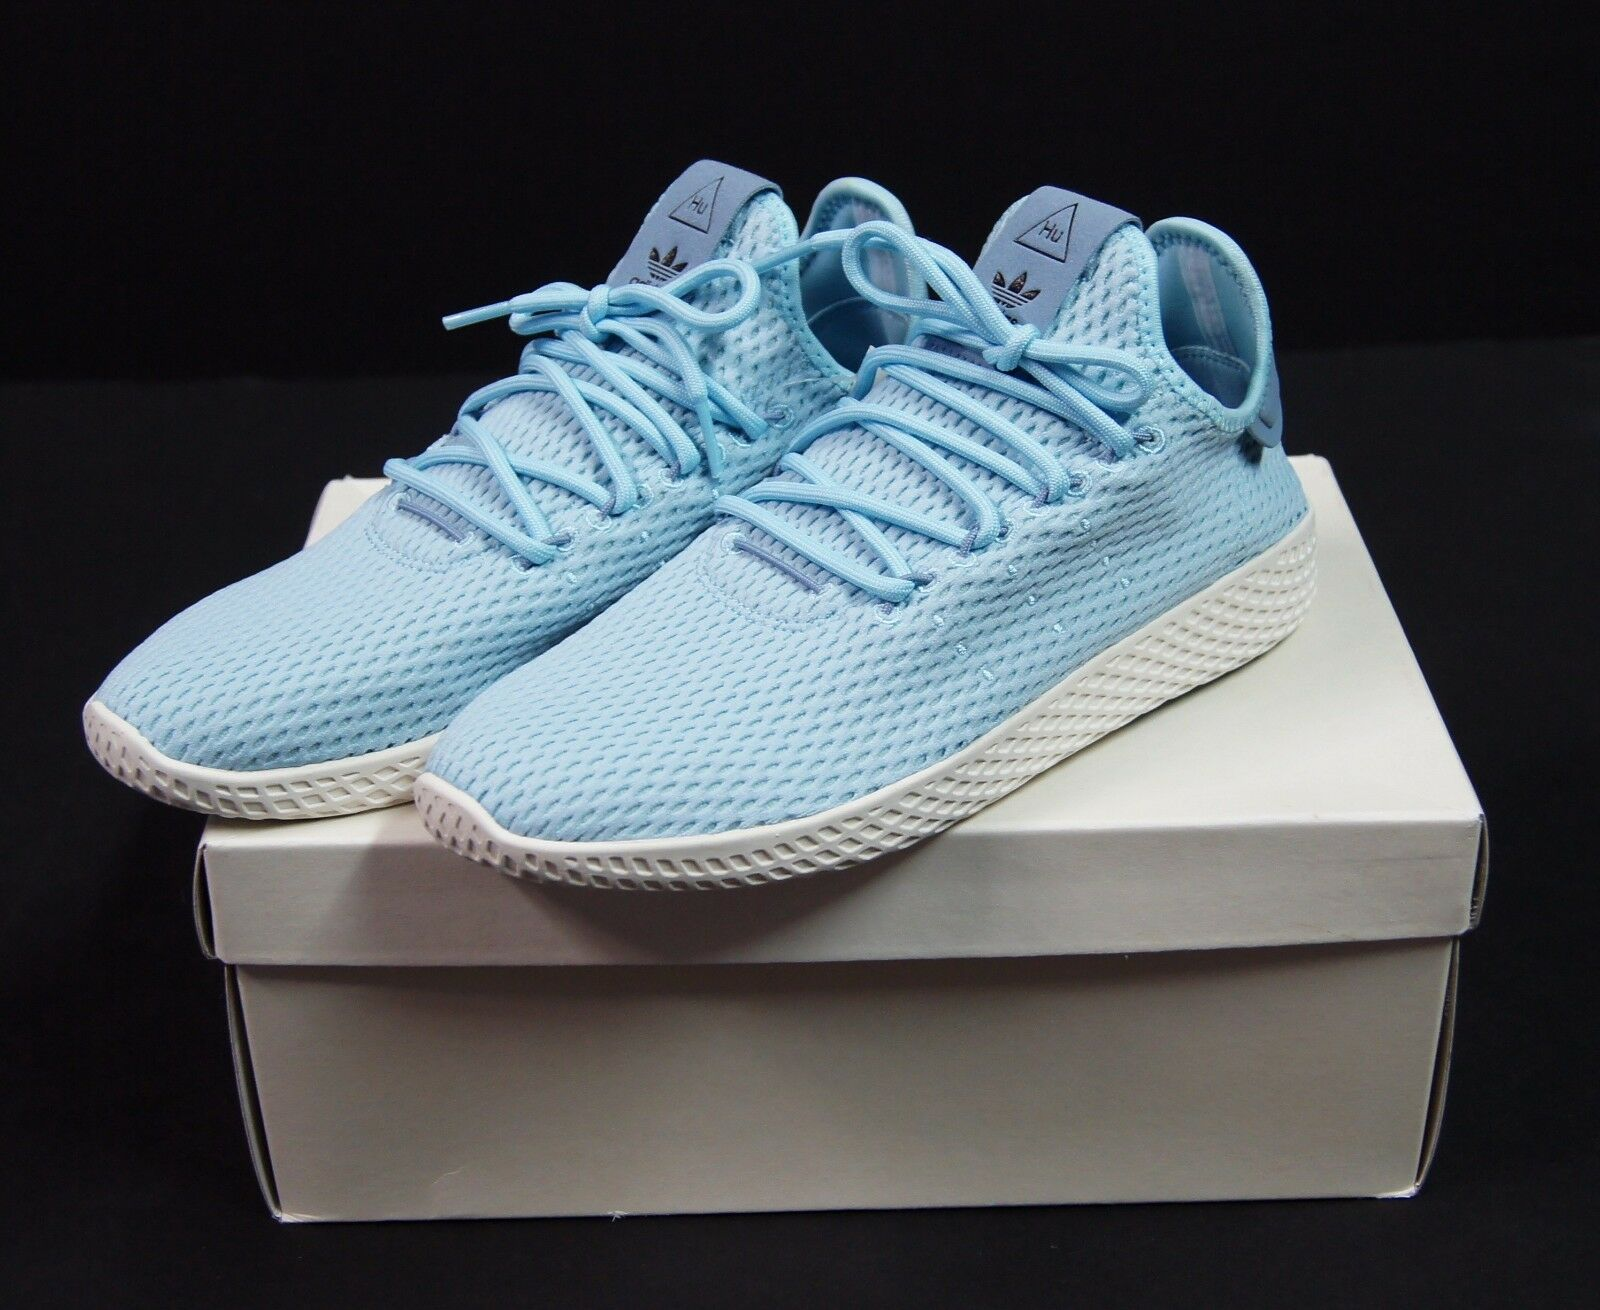 Adidas PW PW Adidas Tennis Hu Pharrell Williams 46a38e